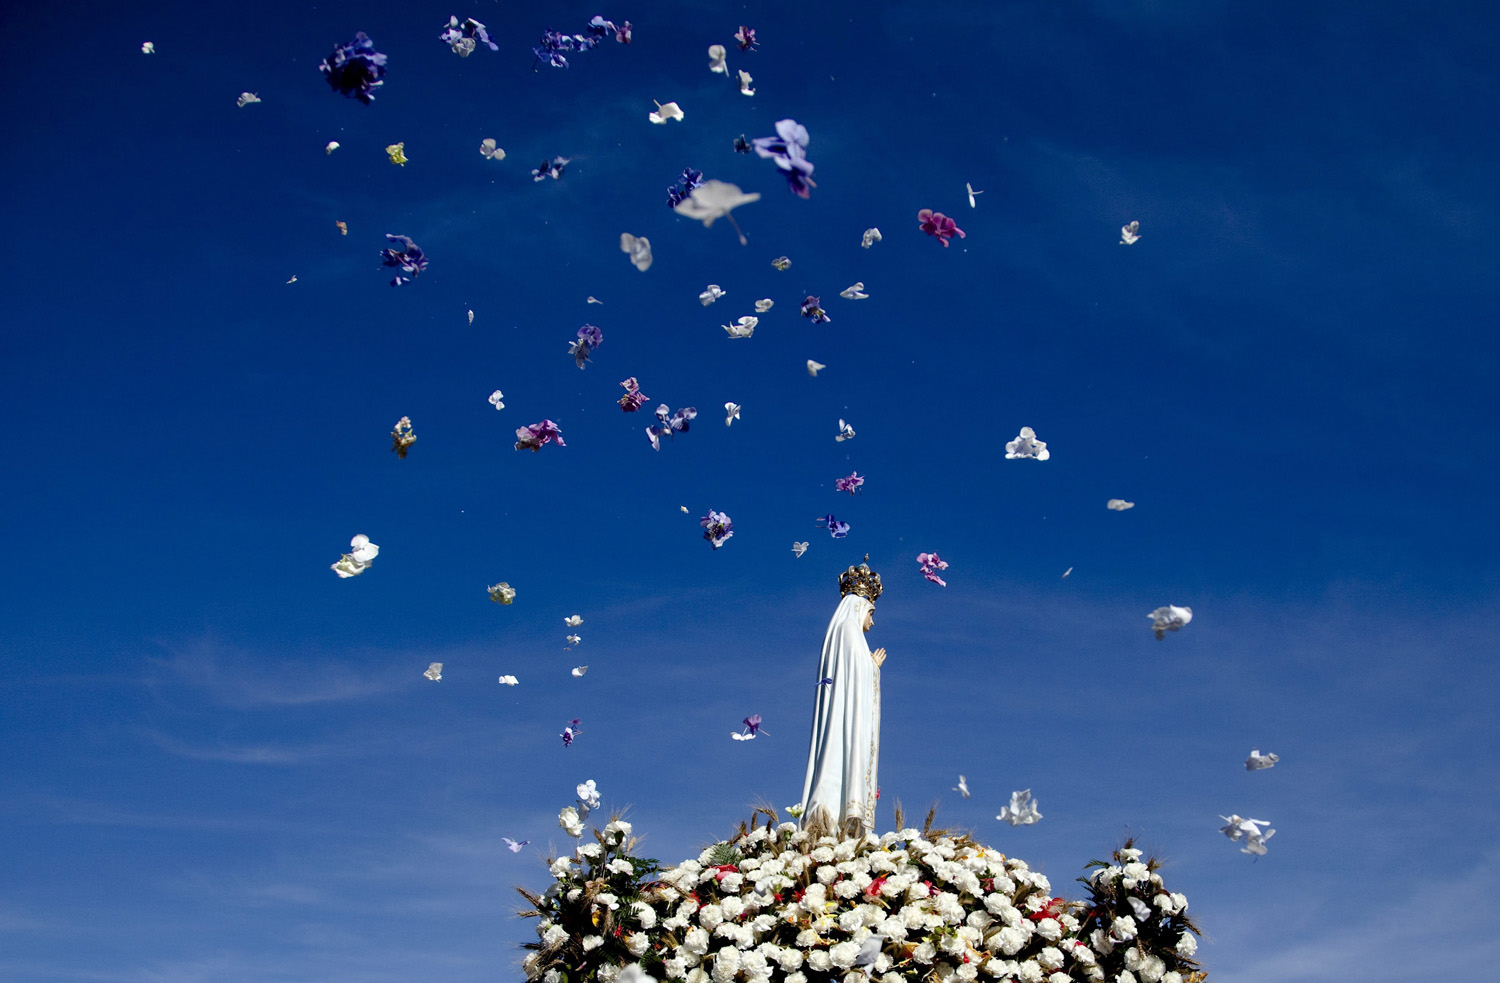 Flowers are thrown in the air as the Image of Our Lady of Fatima is carried over at the Fatima Sanctuary during the pilgrimage at Fatima Sanctuary, in Fatima, Portugal on August 13, 2014.